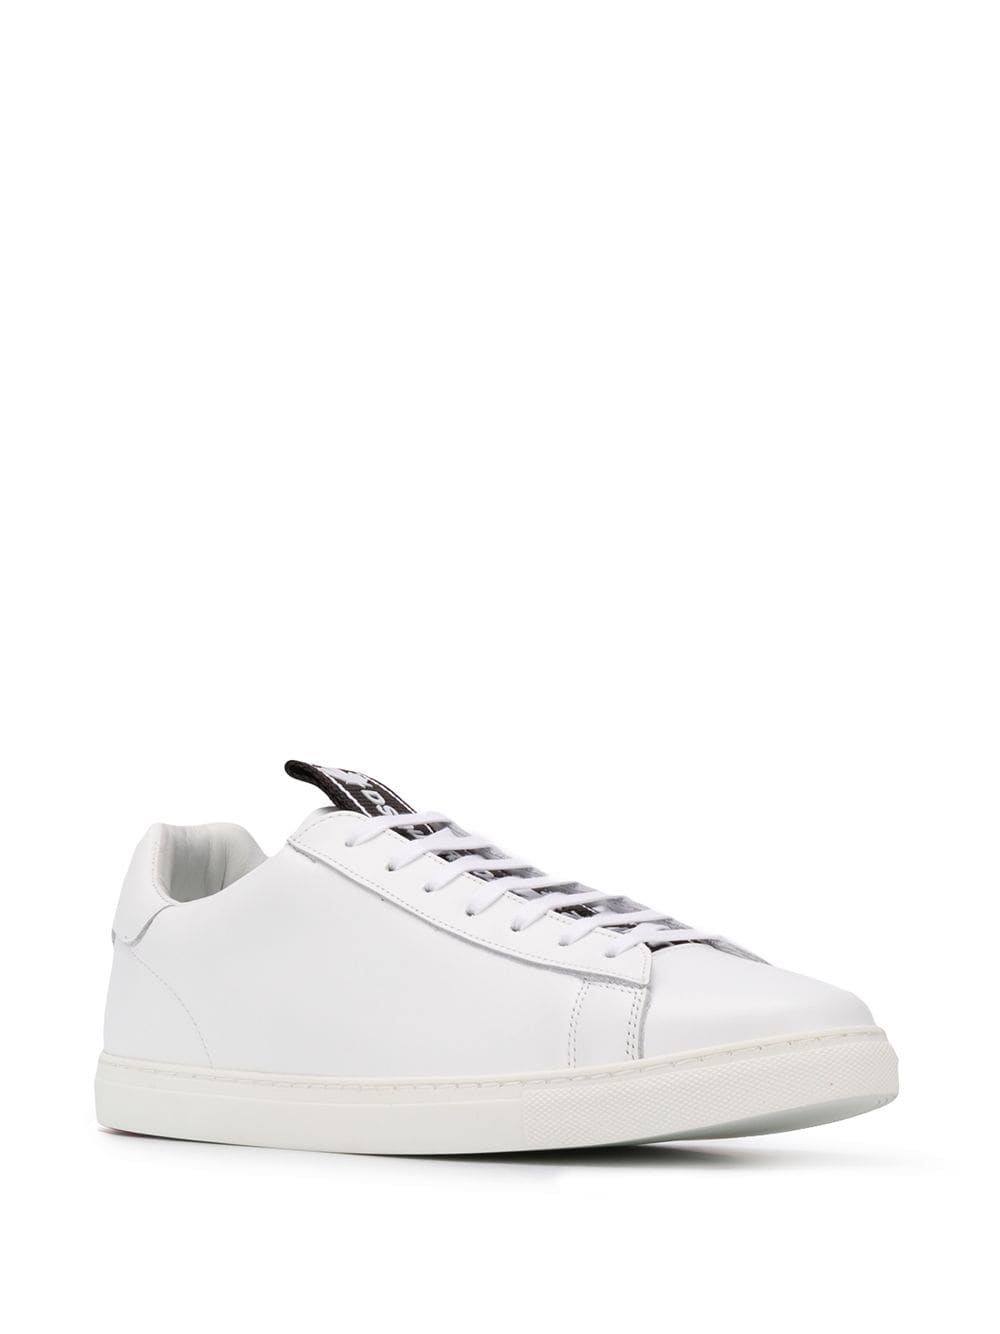 DSQUARED2 Evolution Tape Sneakers White/Black